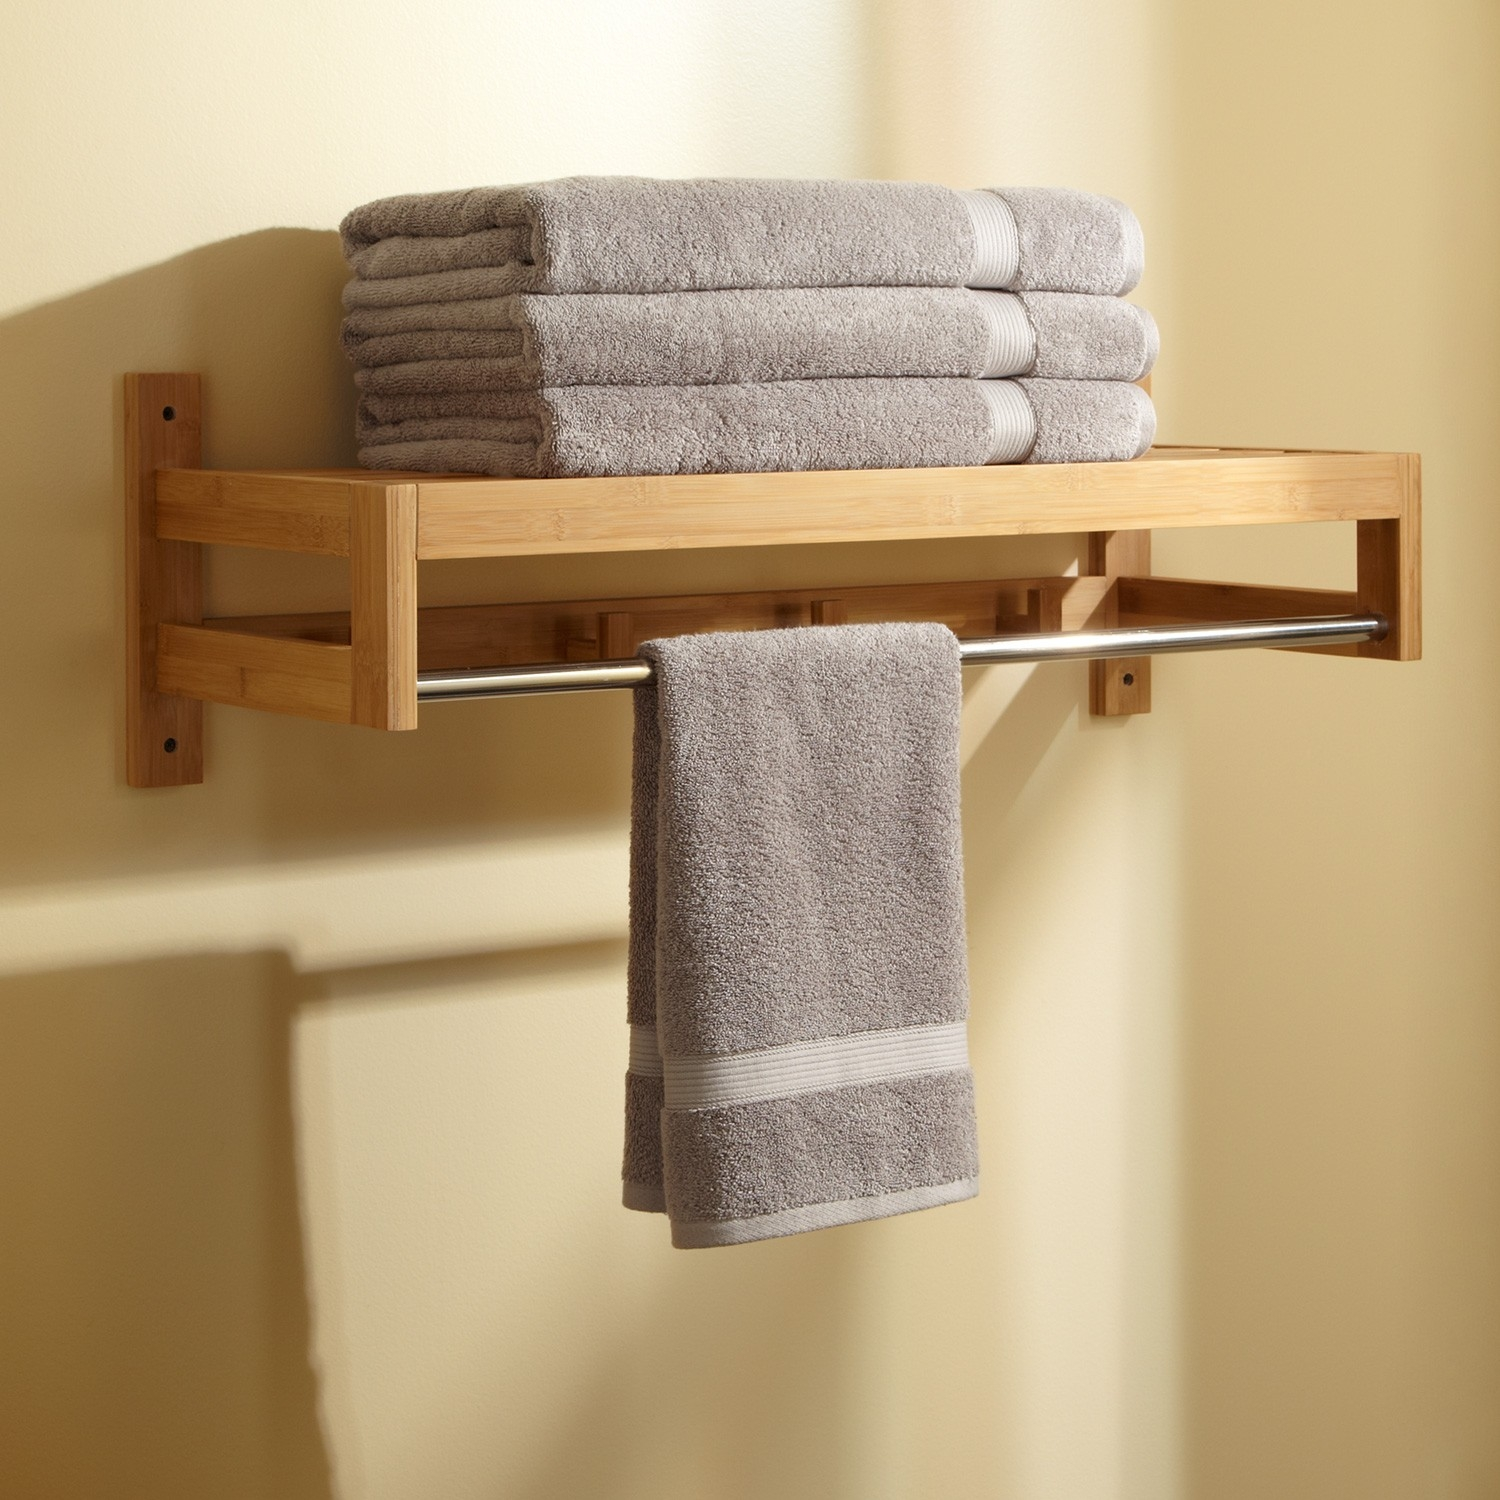 Permalink to Bathroom Cabinets With Towel Rail